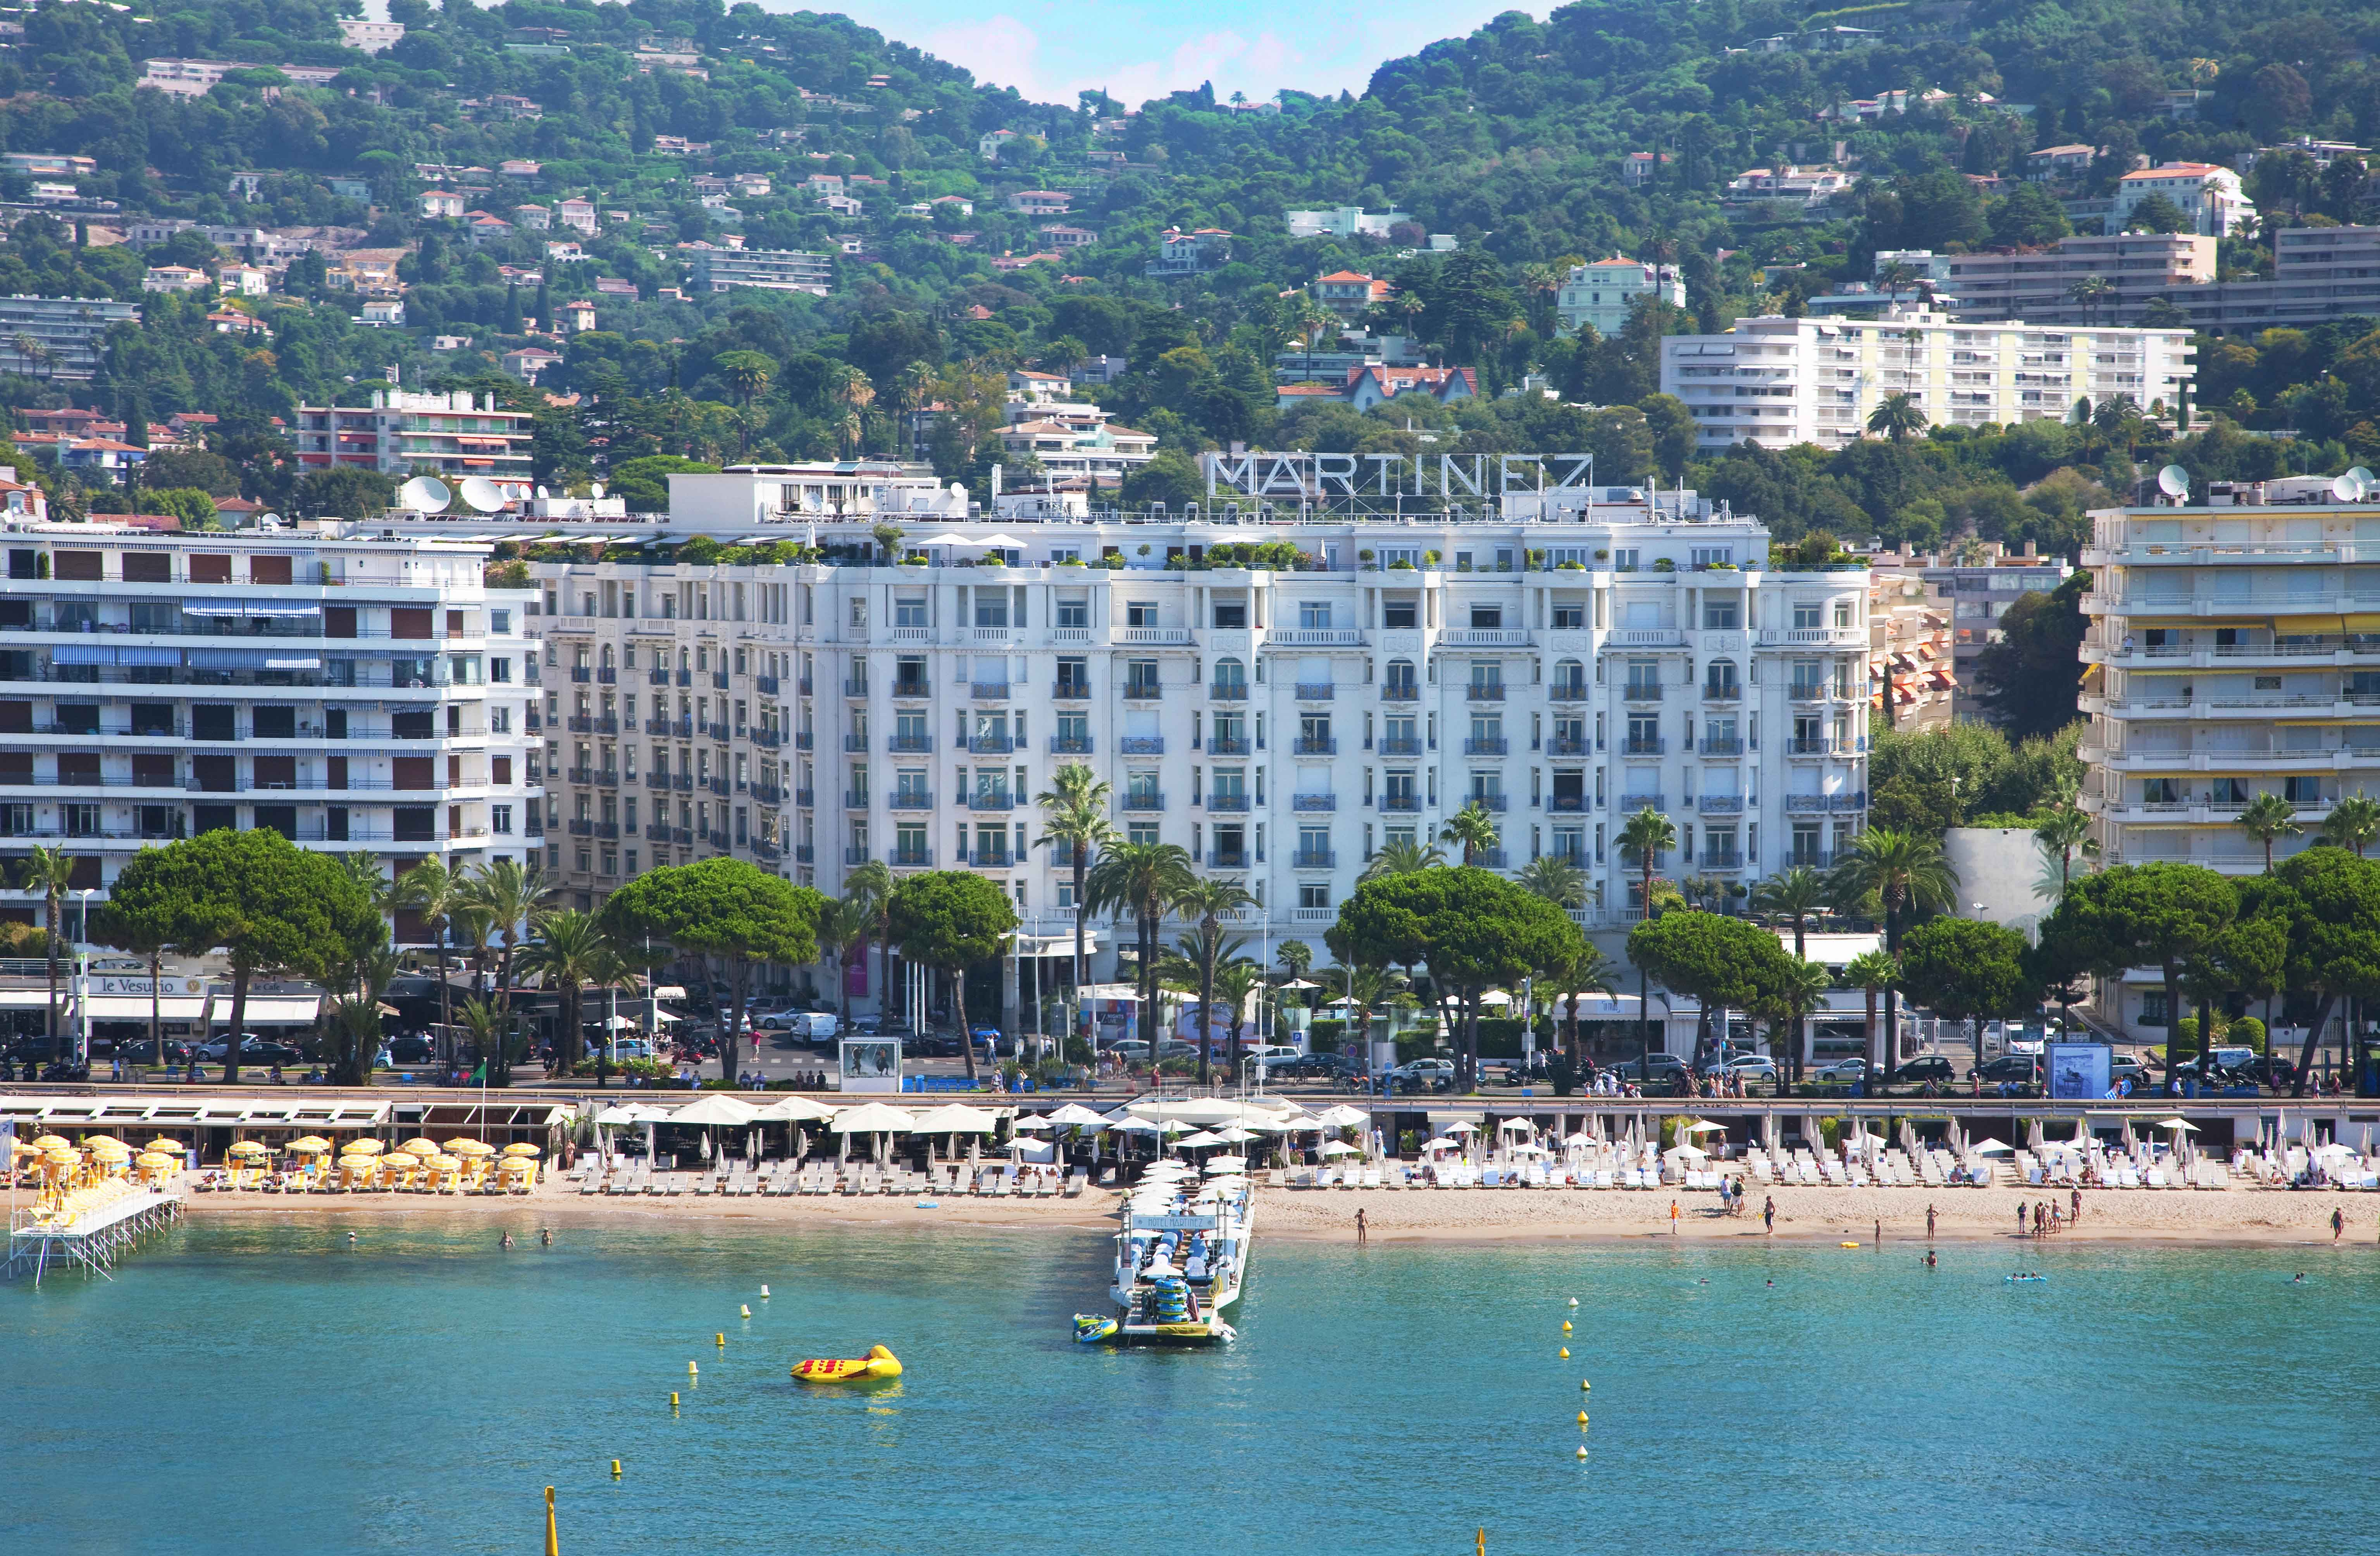 Hotel-Martinez-Cannes-Front